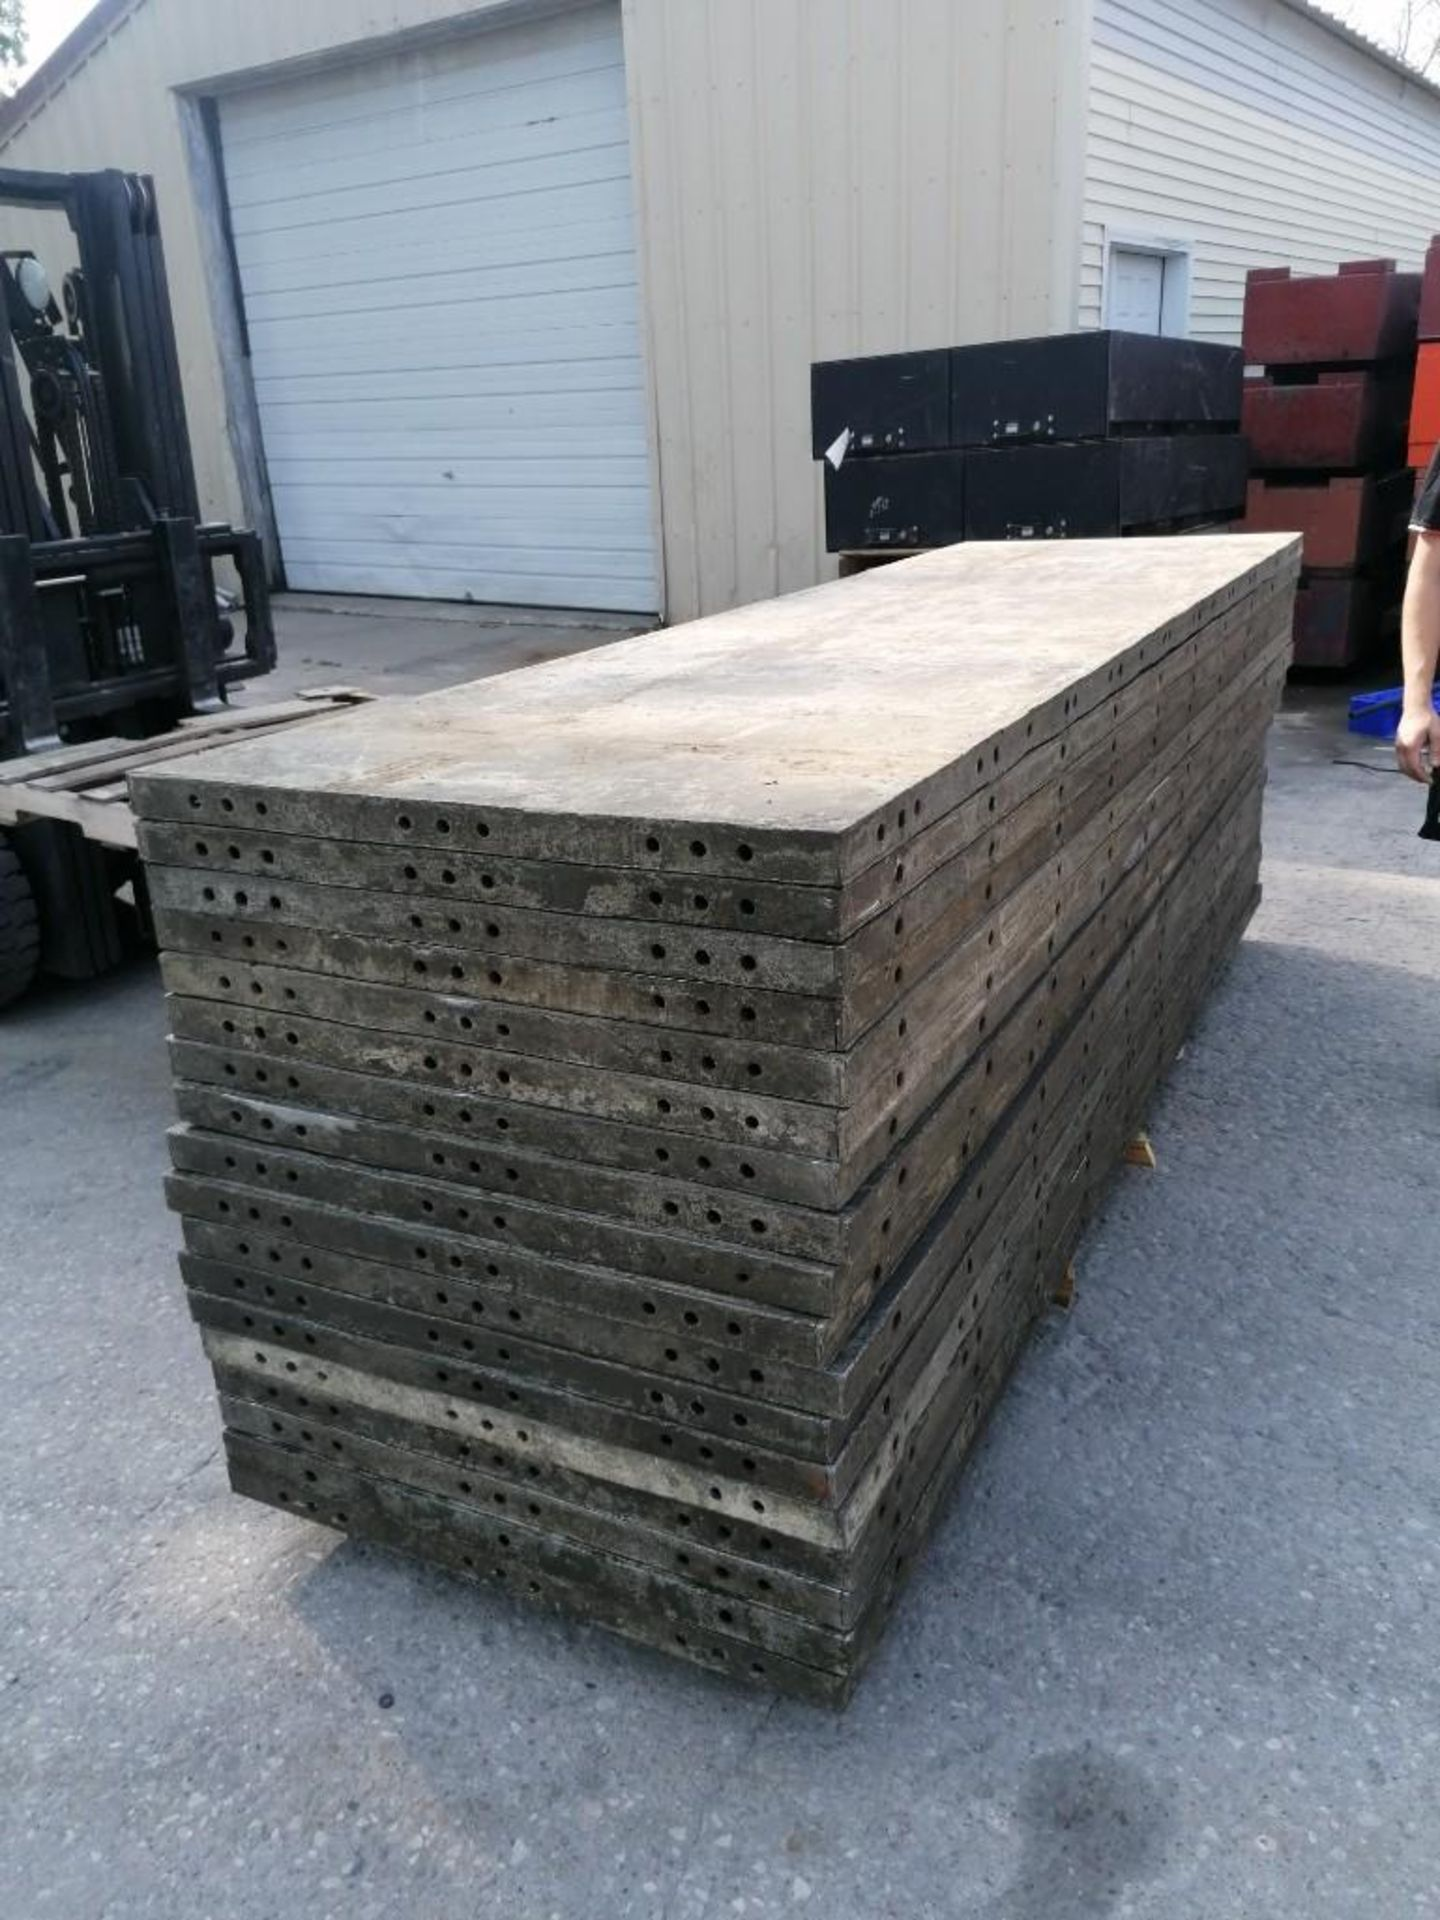 Lot 130 - (18) 3' x 10' Wall-Ties Aluminum Concrete Forms, Smooth 6-12 Hole Pattern. Located at 301 E Henry